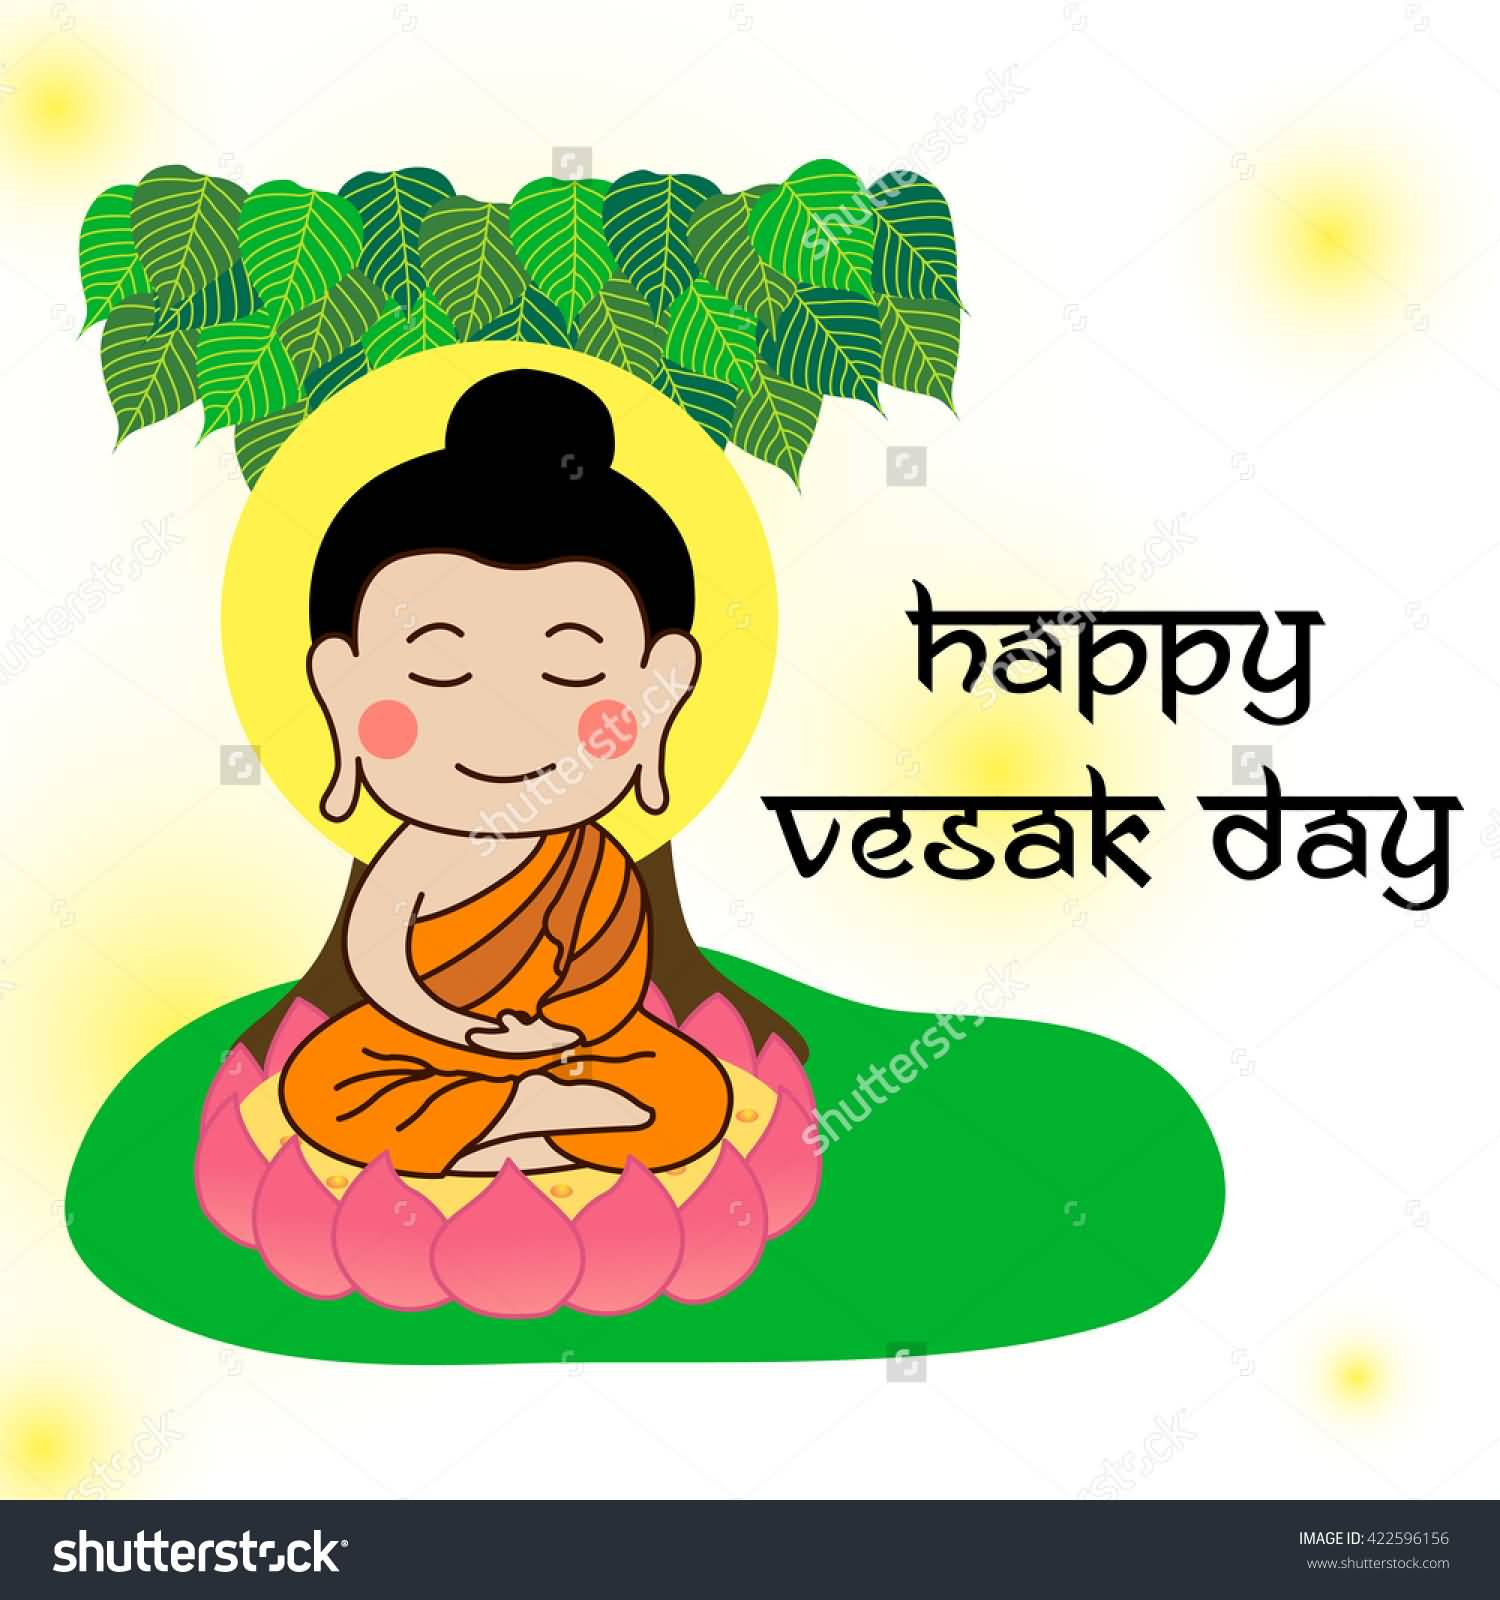 4-Happy Vesak Day Wishes